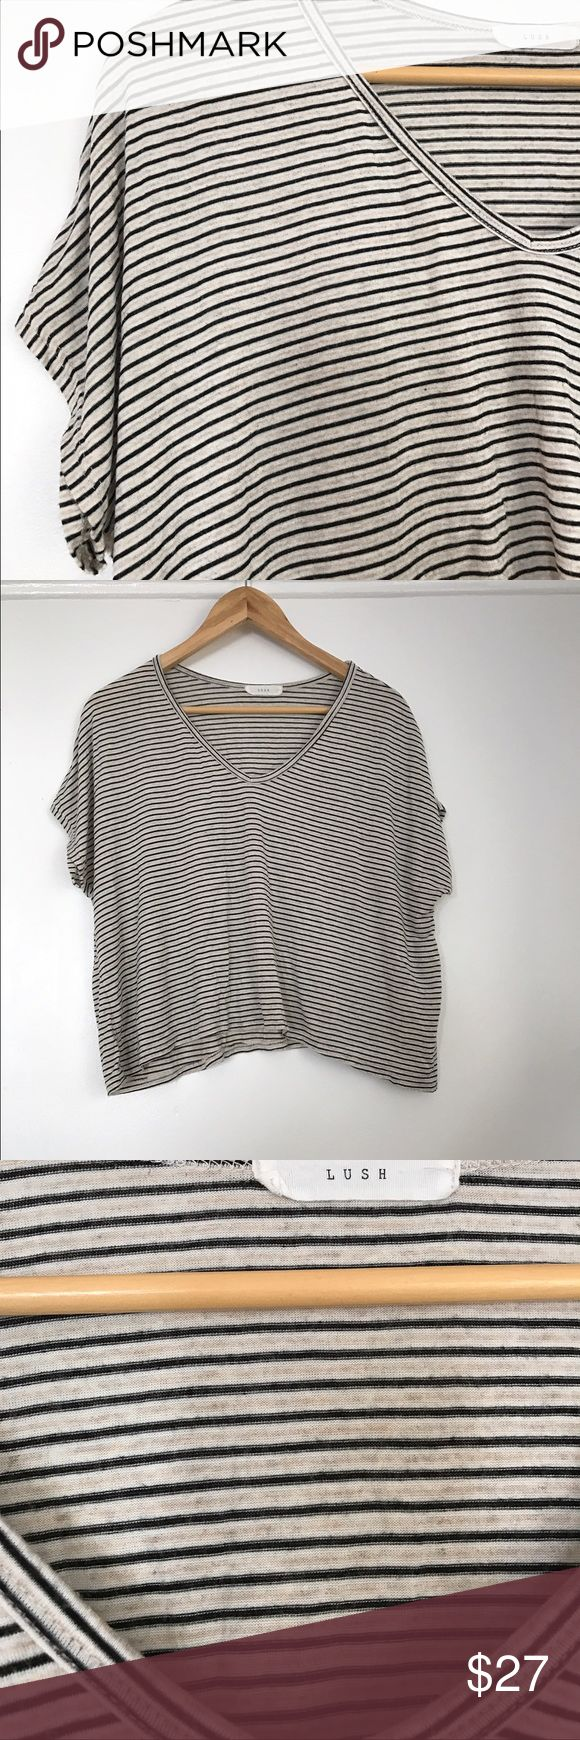 LUSH striped tee This is a super cozy, lightweight, swishy t-shirt with a slightly cropped hem by LUSH. It is striped in thin neutral stripes, and has an open, loose v-neck. This top is women's size medium. Lush Tops Tees - Short Sleeve